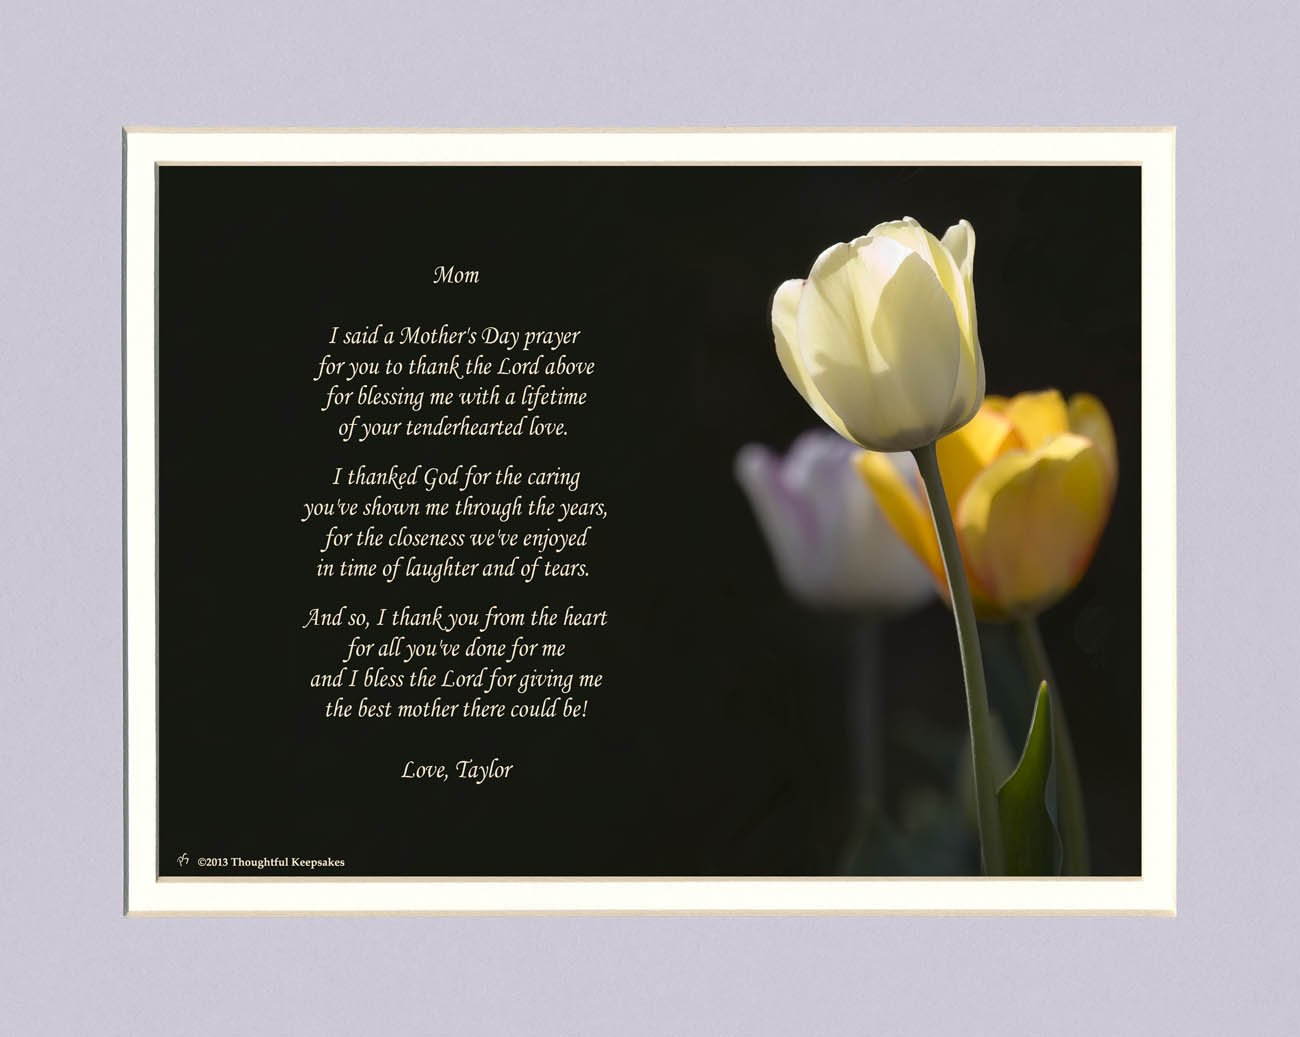 Personalized Mothers Day Gift with Mothers Day Prayer Poem. White Tulip Photo, 8x10 Double Matted. Special Mothers Day Gift for Mom.